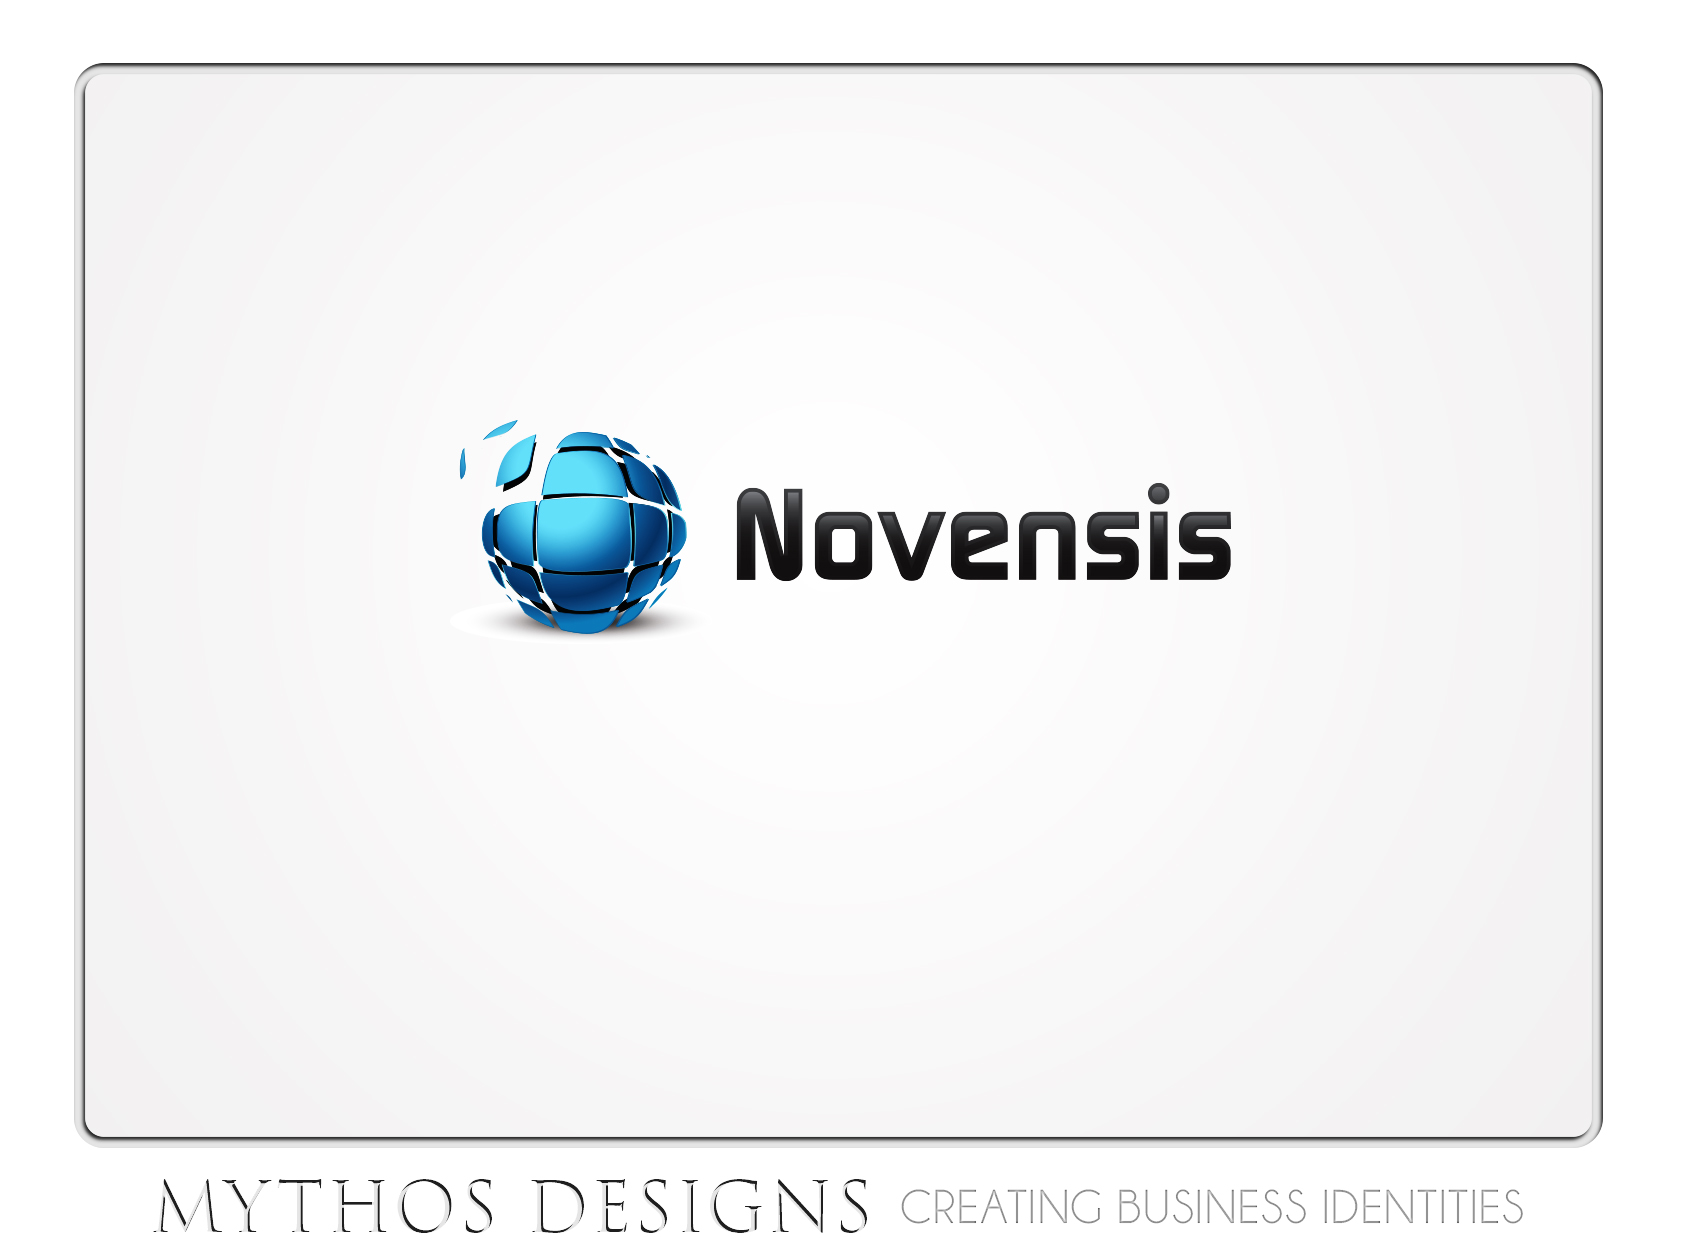 Logo Design by Mythos Designs - Entry No. 54 in the Logo Design Contest Novensis Logo Design.